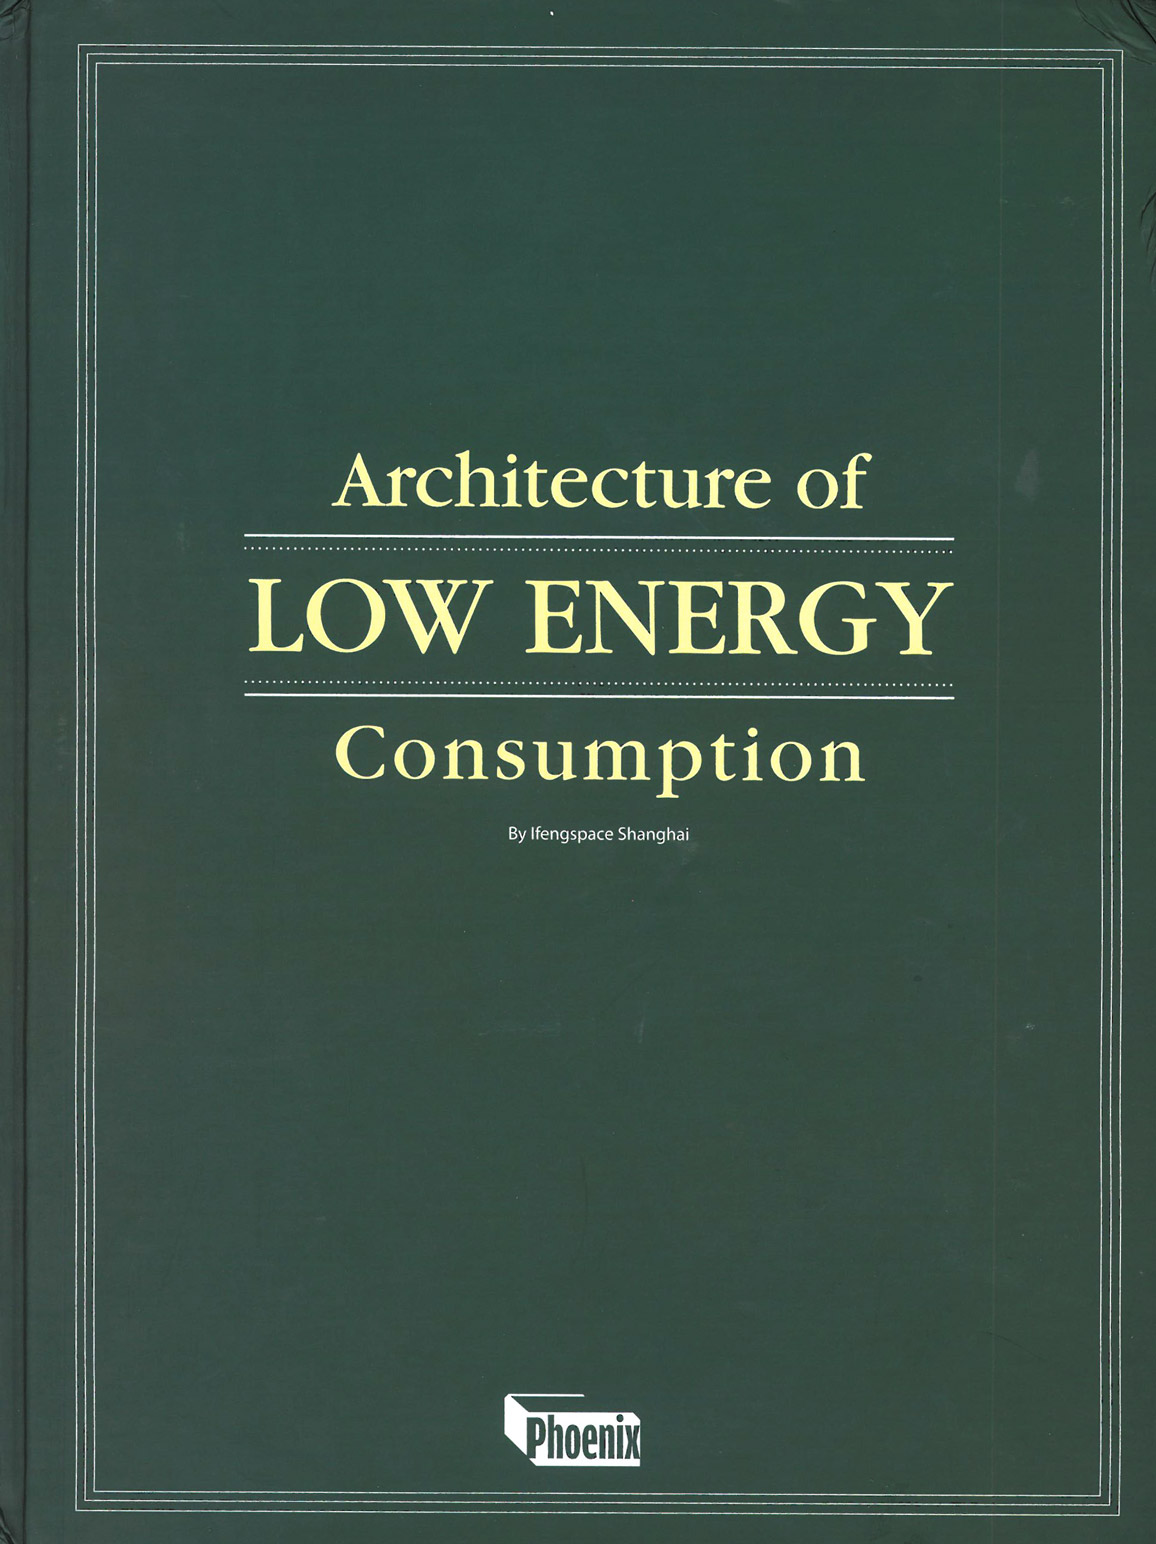 Low Energy Consumption by Phoenix